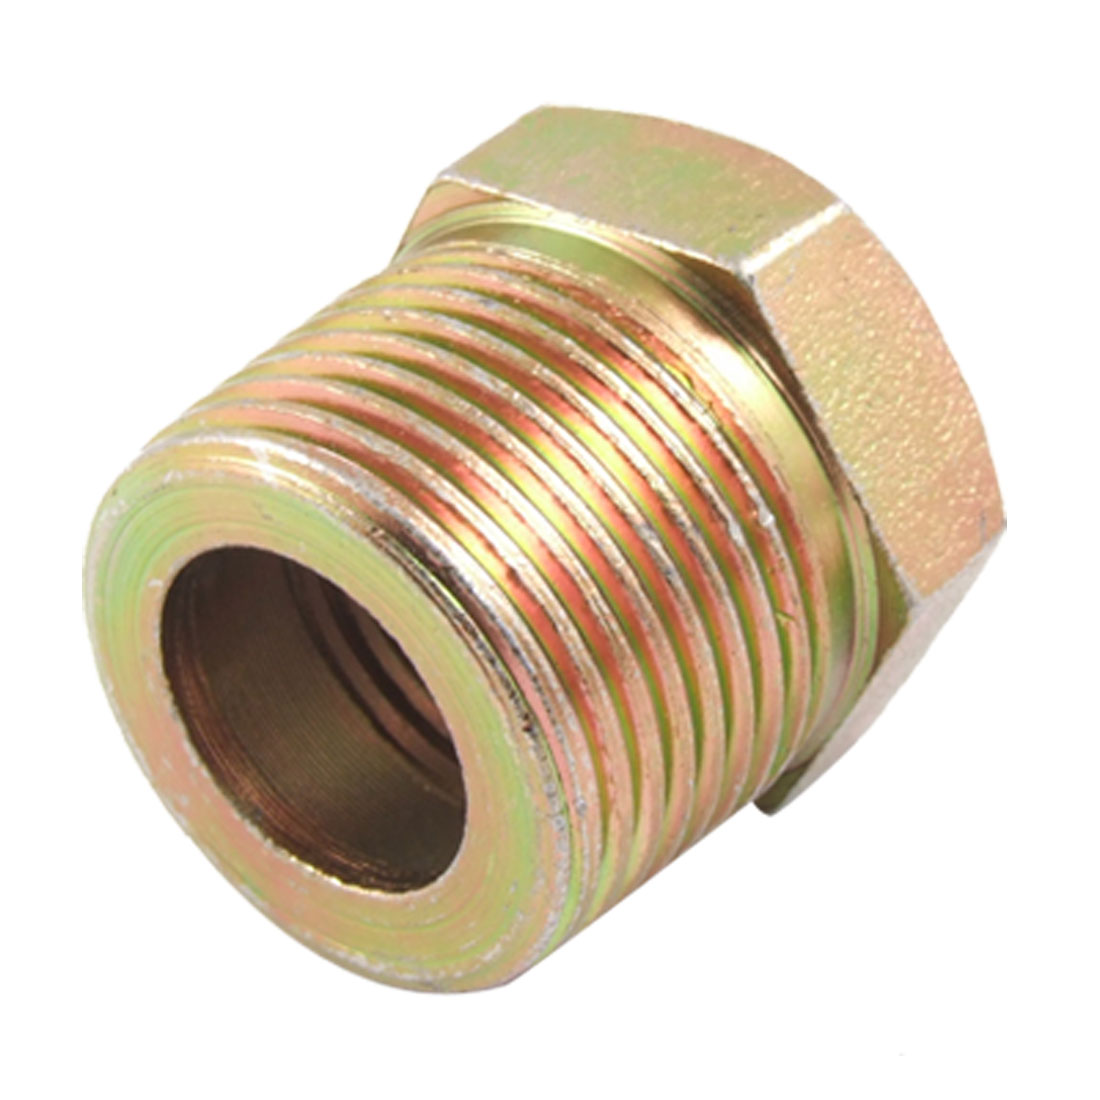 "Hydraulic Fitting 1"" Male to 47/64"" Female Thread Pipe Hex Reducing Bushing Adapter"